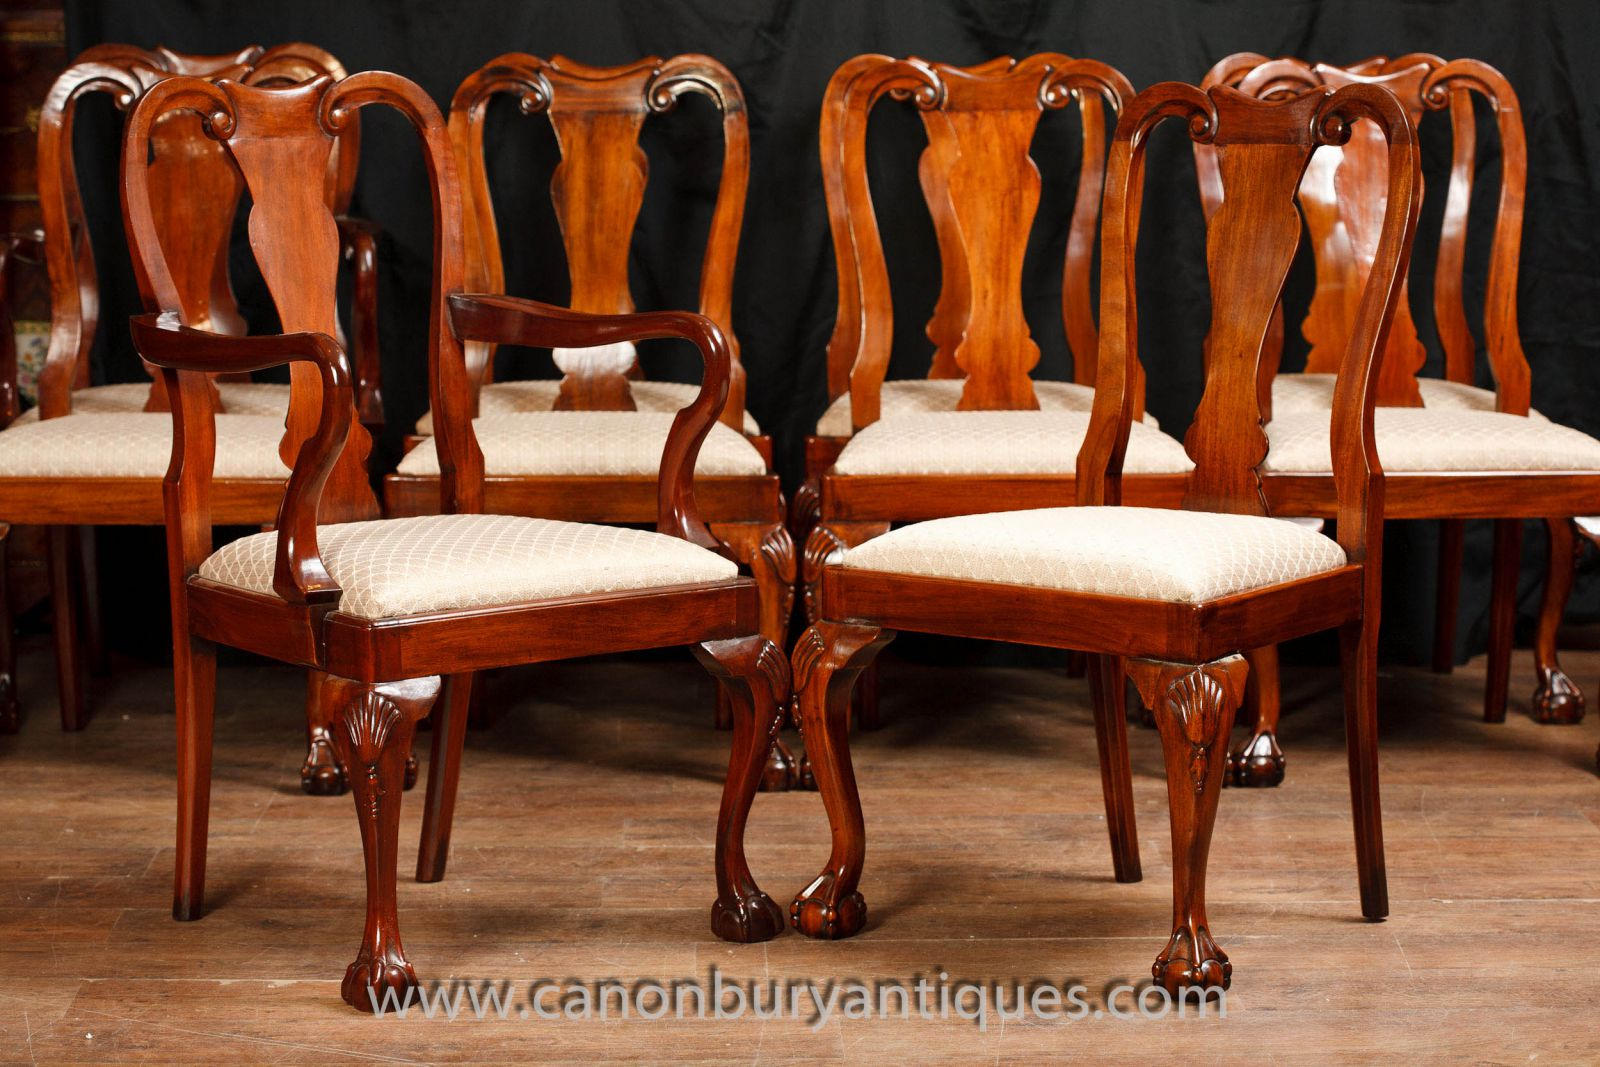 Set Queen Anne Dining Chairs www_canonburyantiques_com (4)-2